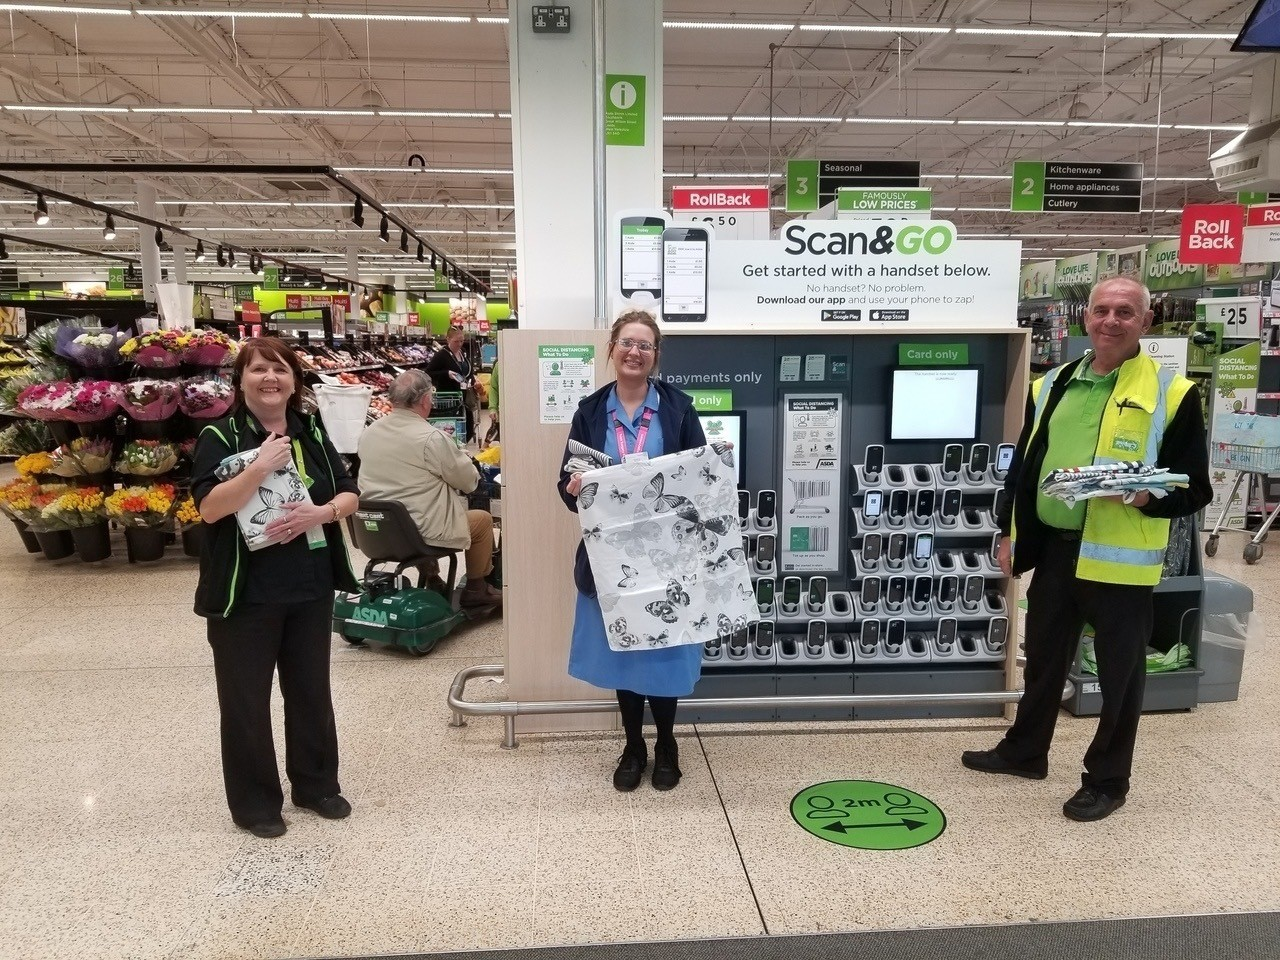 Twins from Asda Plymouth make scrubs for NHS while self-isolating | Asda Plymouth